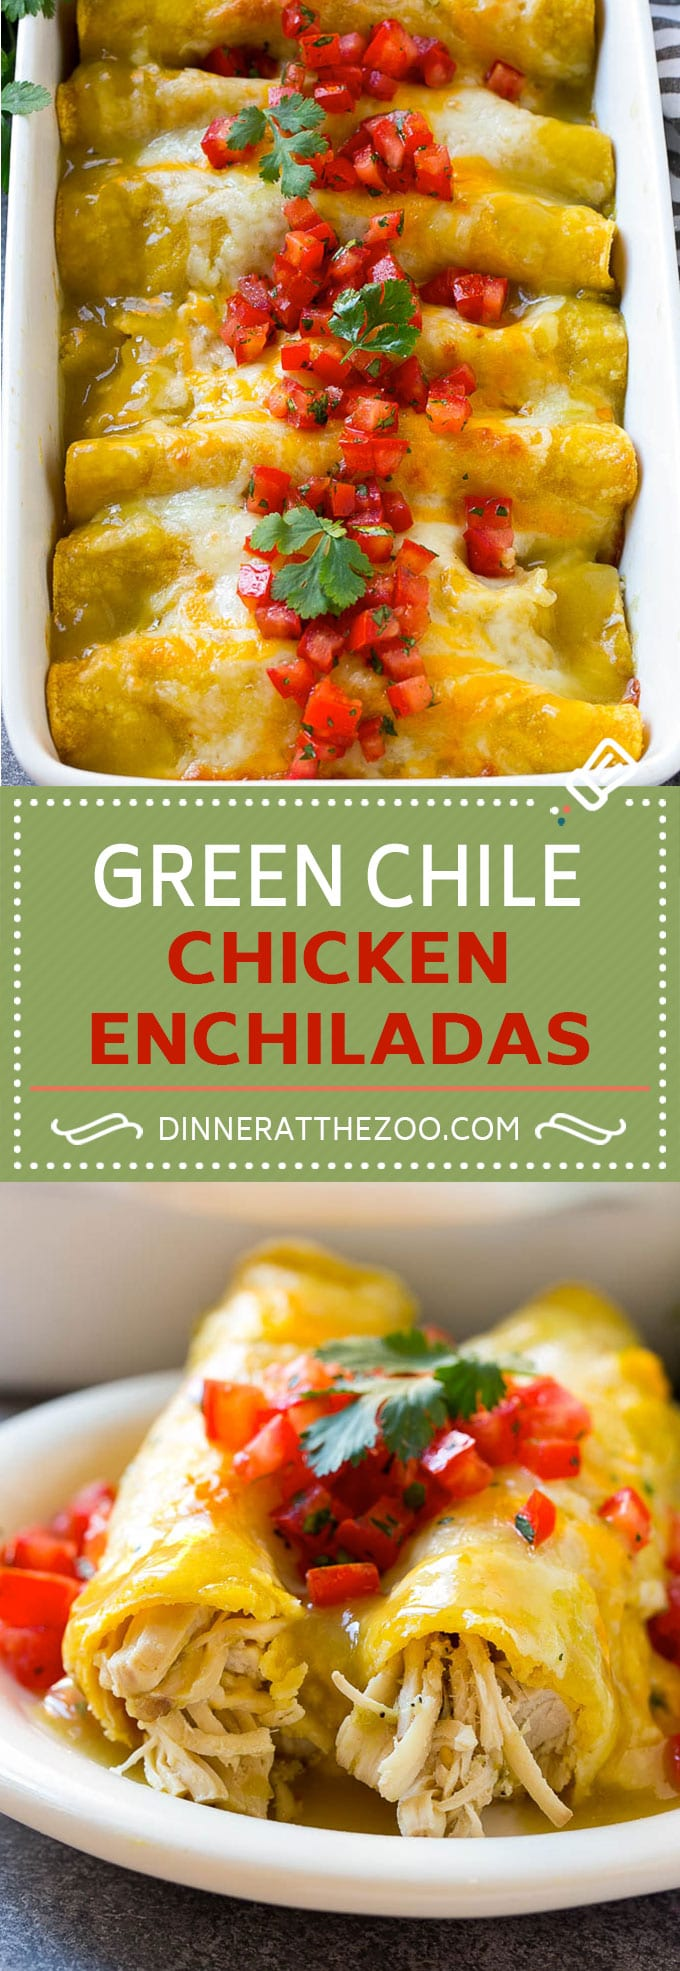 Green Chile Chicken Enchiladas Recipe | Green Enchiladas Recipe | Easy Enchiladas | Chicken Enchiladas | Chicken and Cheese Enchiladas #enchiladas #chicken #cheese #dinner #dinneratthezoo